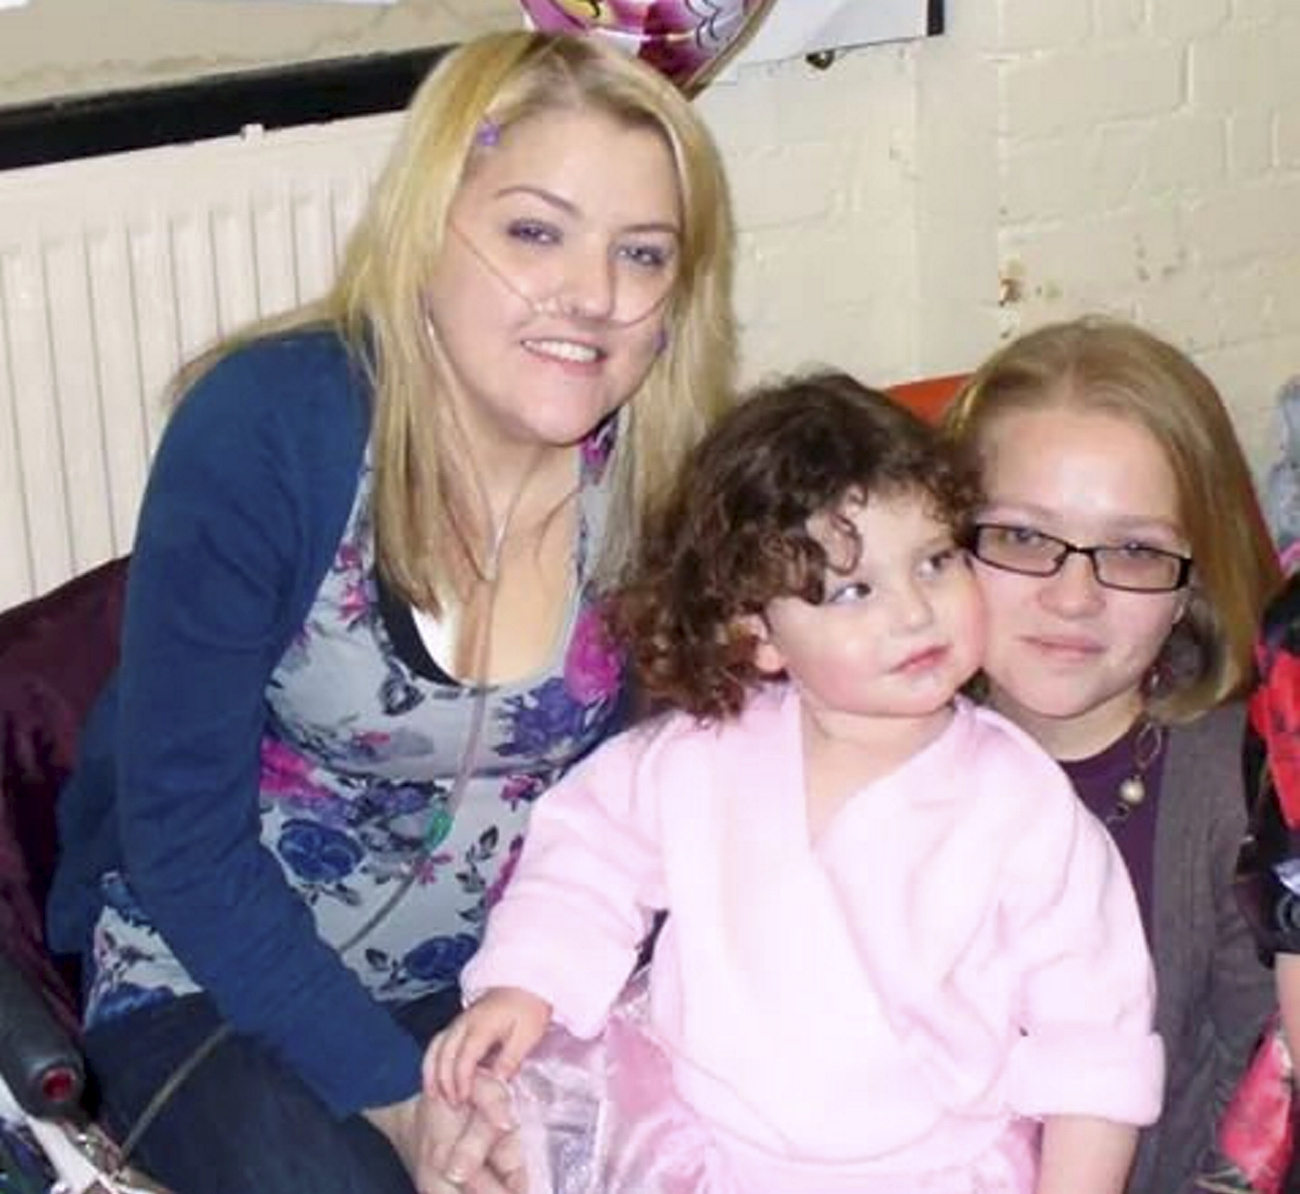 "Collect of Hayley Wall (L) with her sister Gemma(R) and her niece Maddie. A pioneering surgical technique has been used to give Hayley Wall from Plymouth, Devon, a new set of lungs  See SWNS story SWLUNGS; A petite cystic fibrosis sufferer has received a life-saving double lung transplant - after surgeons used a pioneering technique to TRIM the donor organs down to size. Former nursery worker Hayley Wall, 27, is just 4ft 8in and only six-and-a-half stone, making it difficult for doctors to find donor lungs small enough to fit her little body. But they were forced to rethink when her health deteriorated and used much-larger donor organs and kept them 'working' on a machine as they trimmed them down to fit. Upbeat Hayley, from Plymouth, Devon, is now recovering from the operation and is delighted to be taking her first deep breaths in decades. Inspirational Hayley said: ""I was told I could be waiting for more than 18 months and that my small size would make it difficult to find a matching pair."